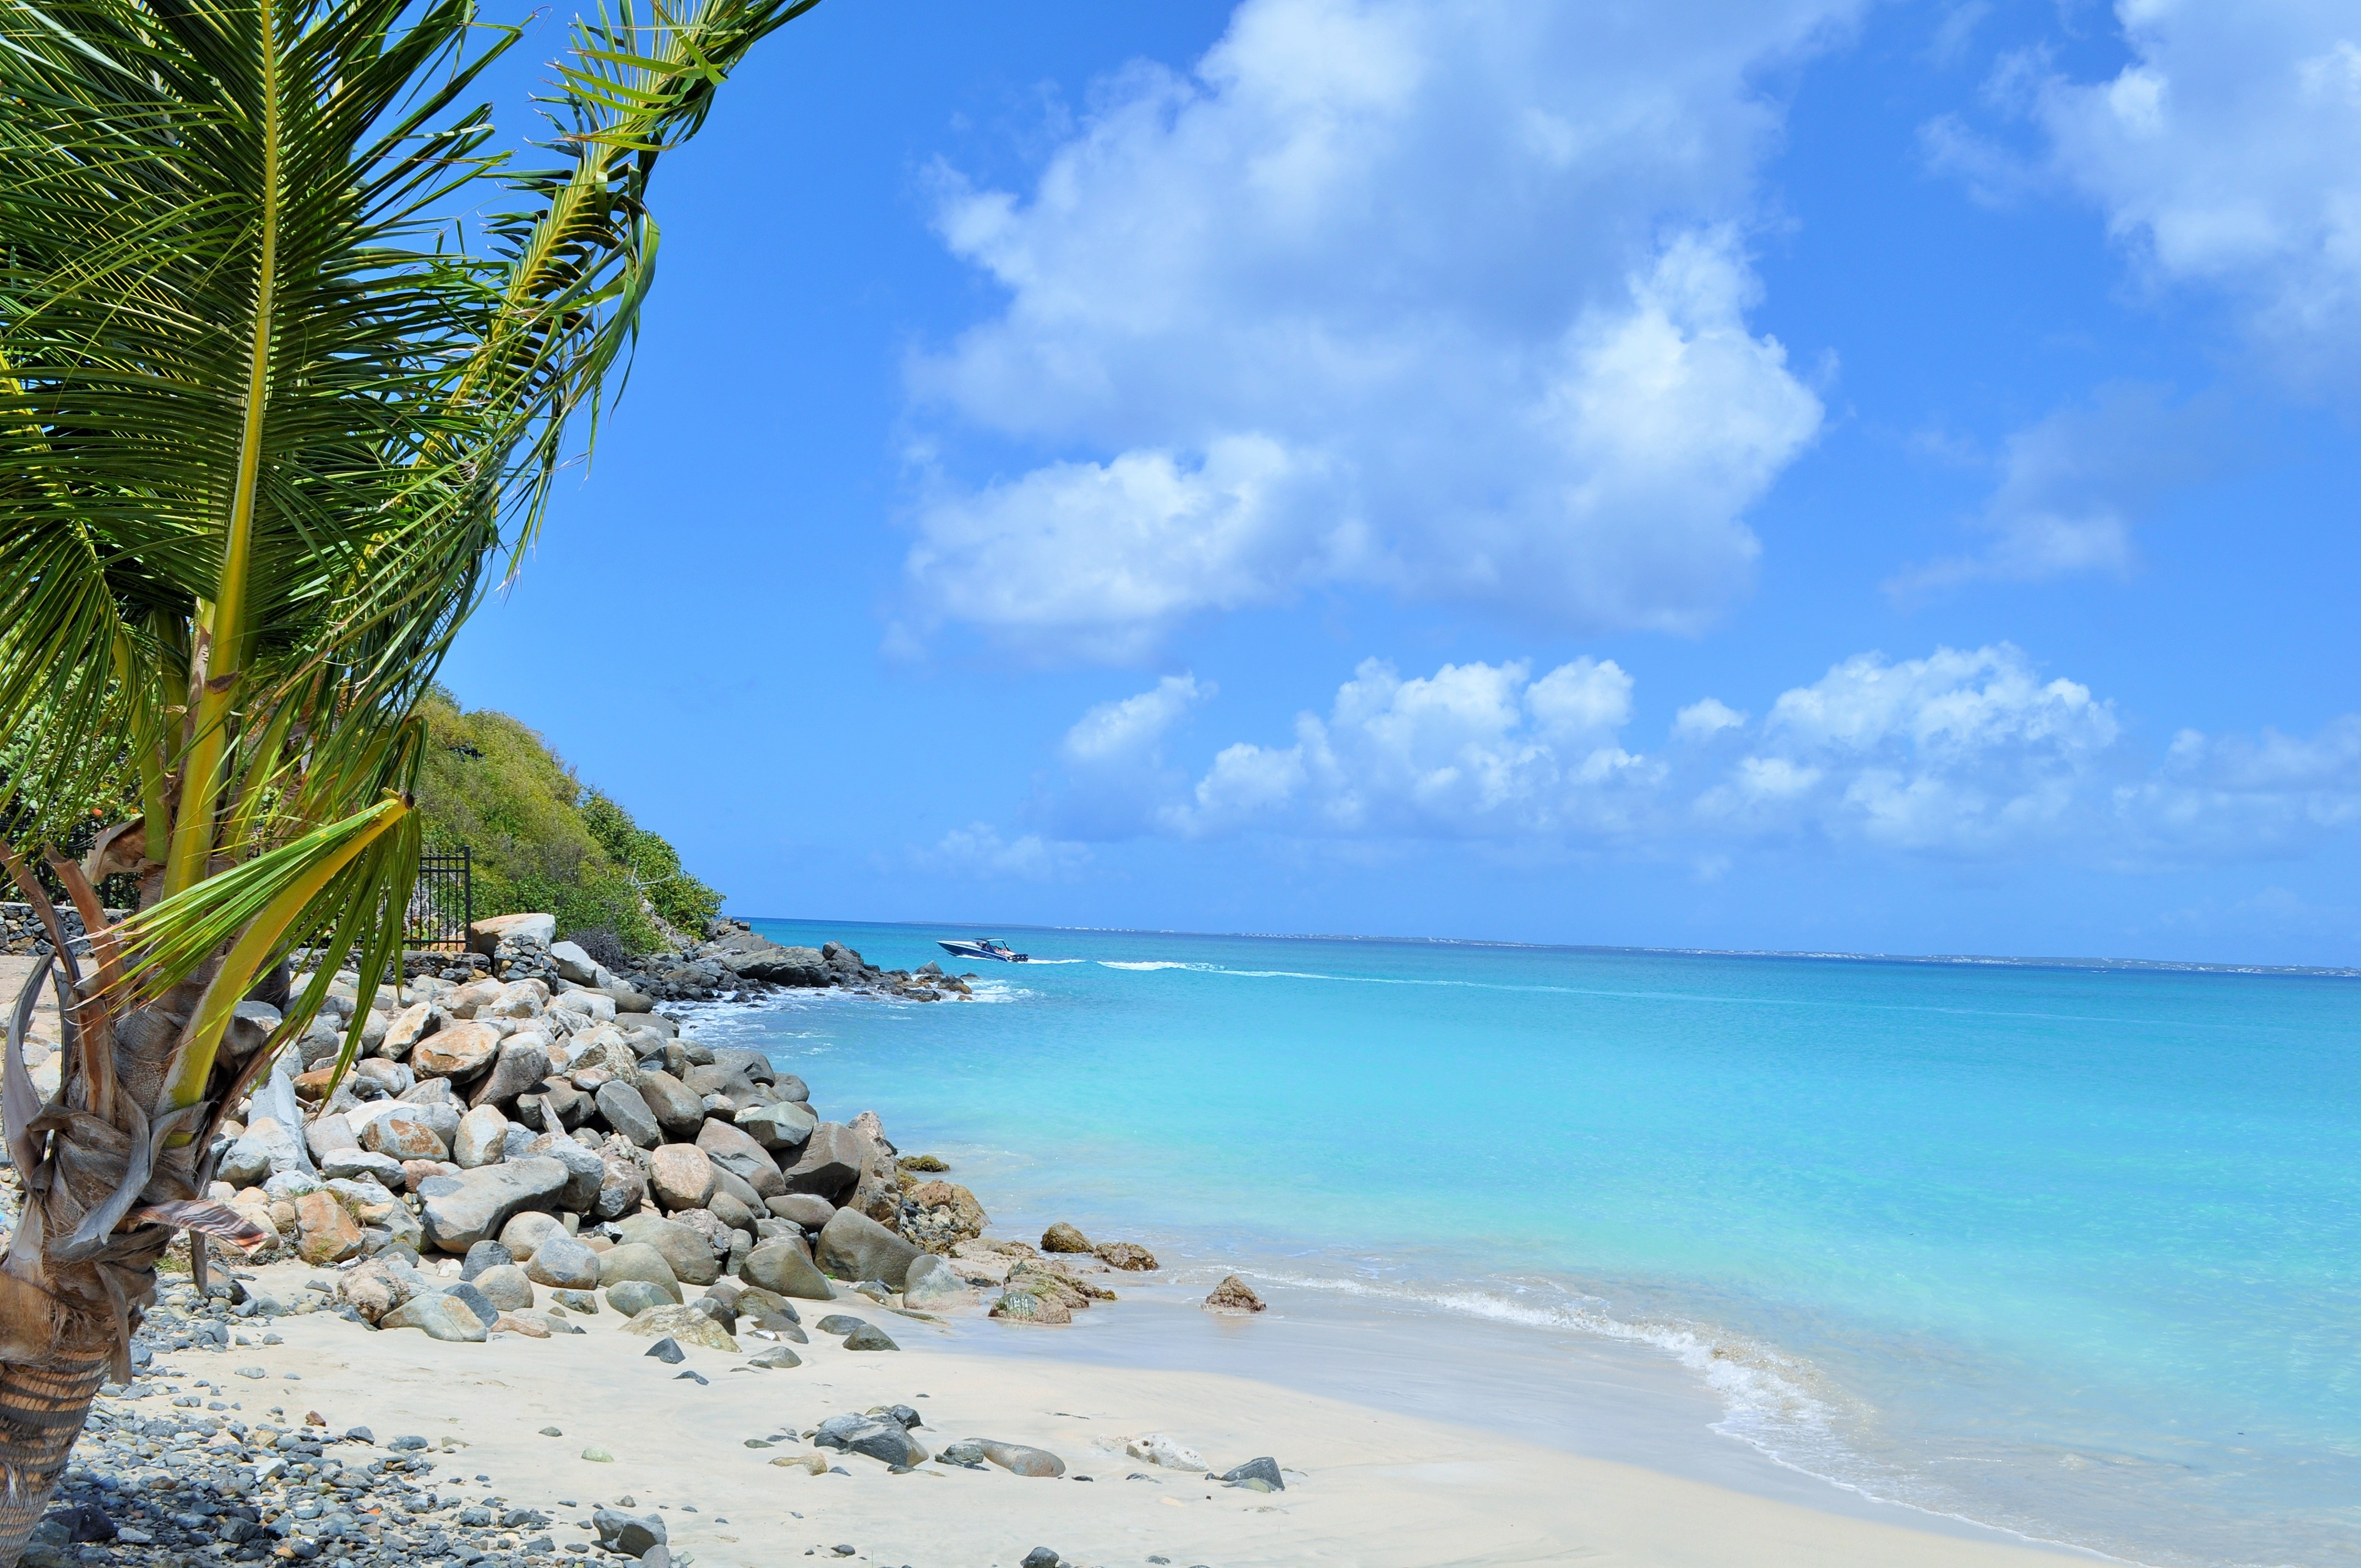 Entry requirements For French Overseas Territories